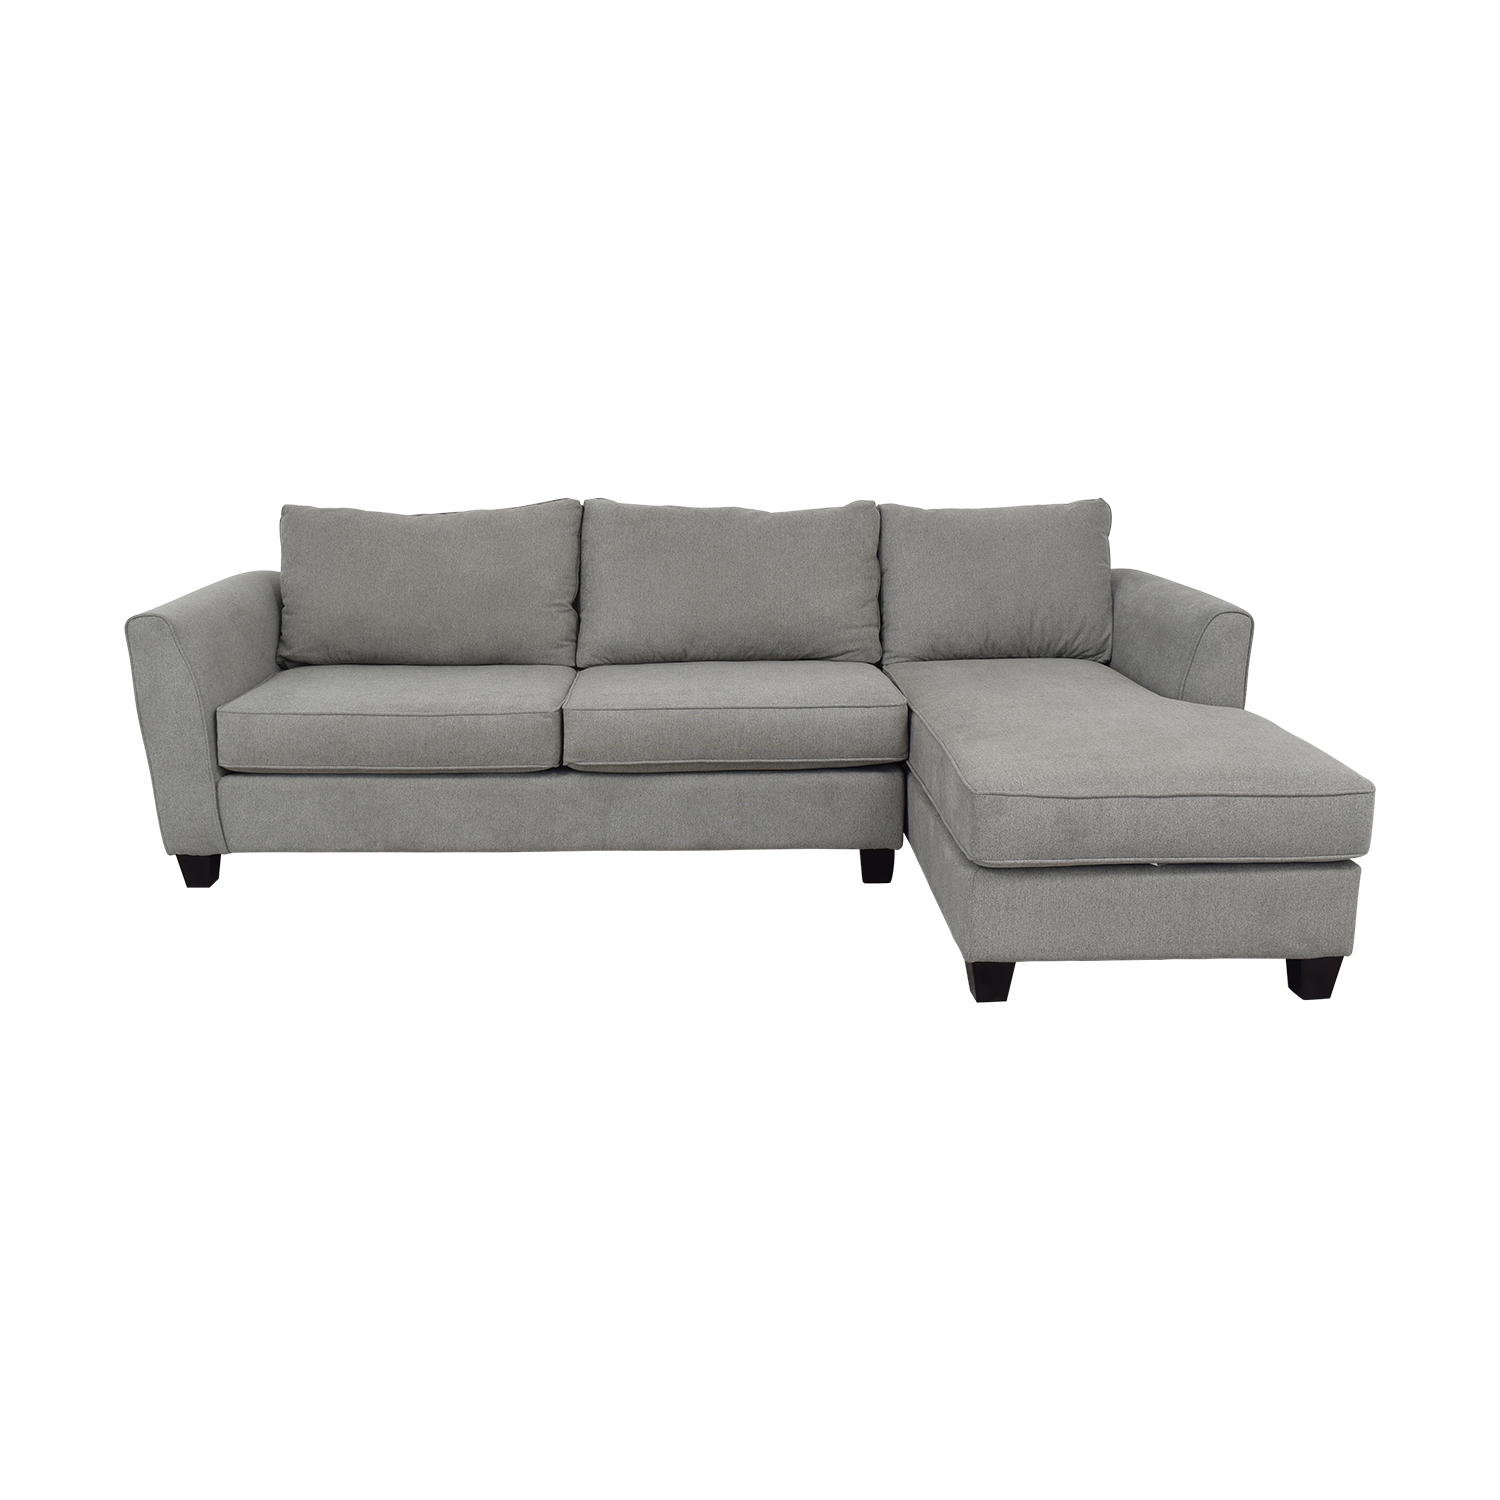 Raymour & Flanigan Raymour & Flanigan Sectional discount